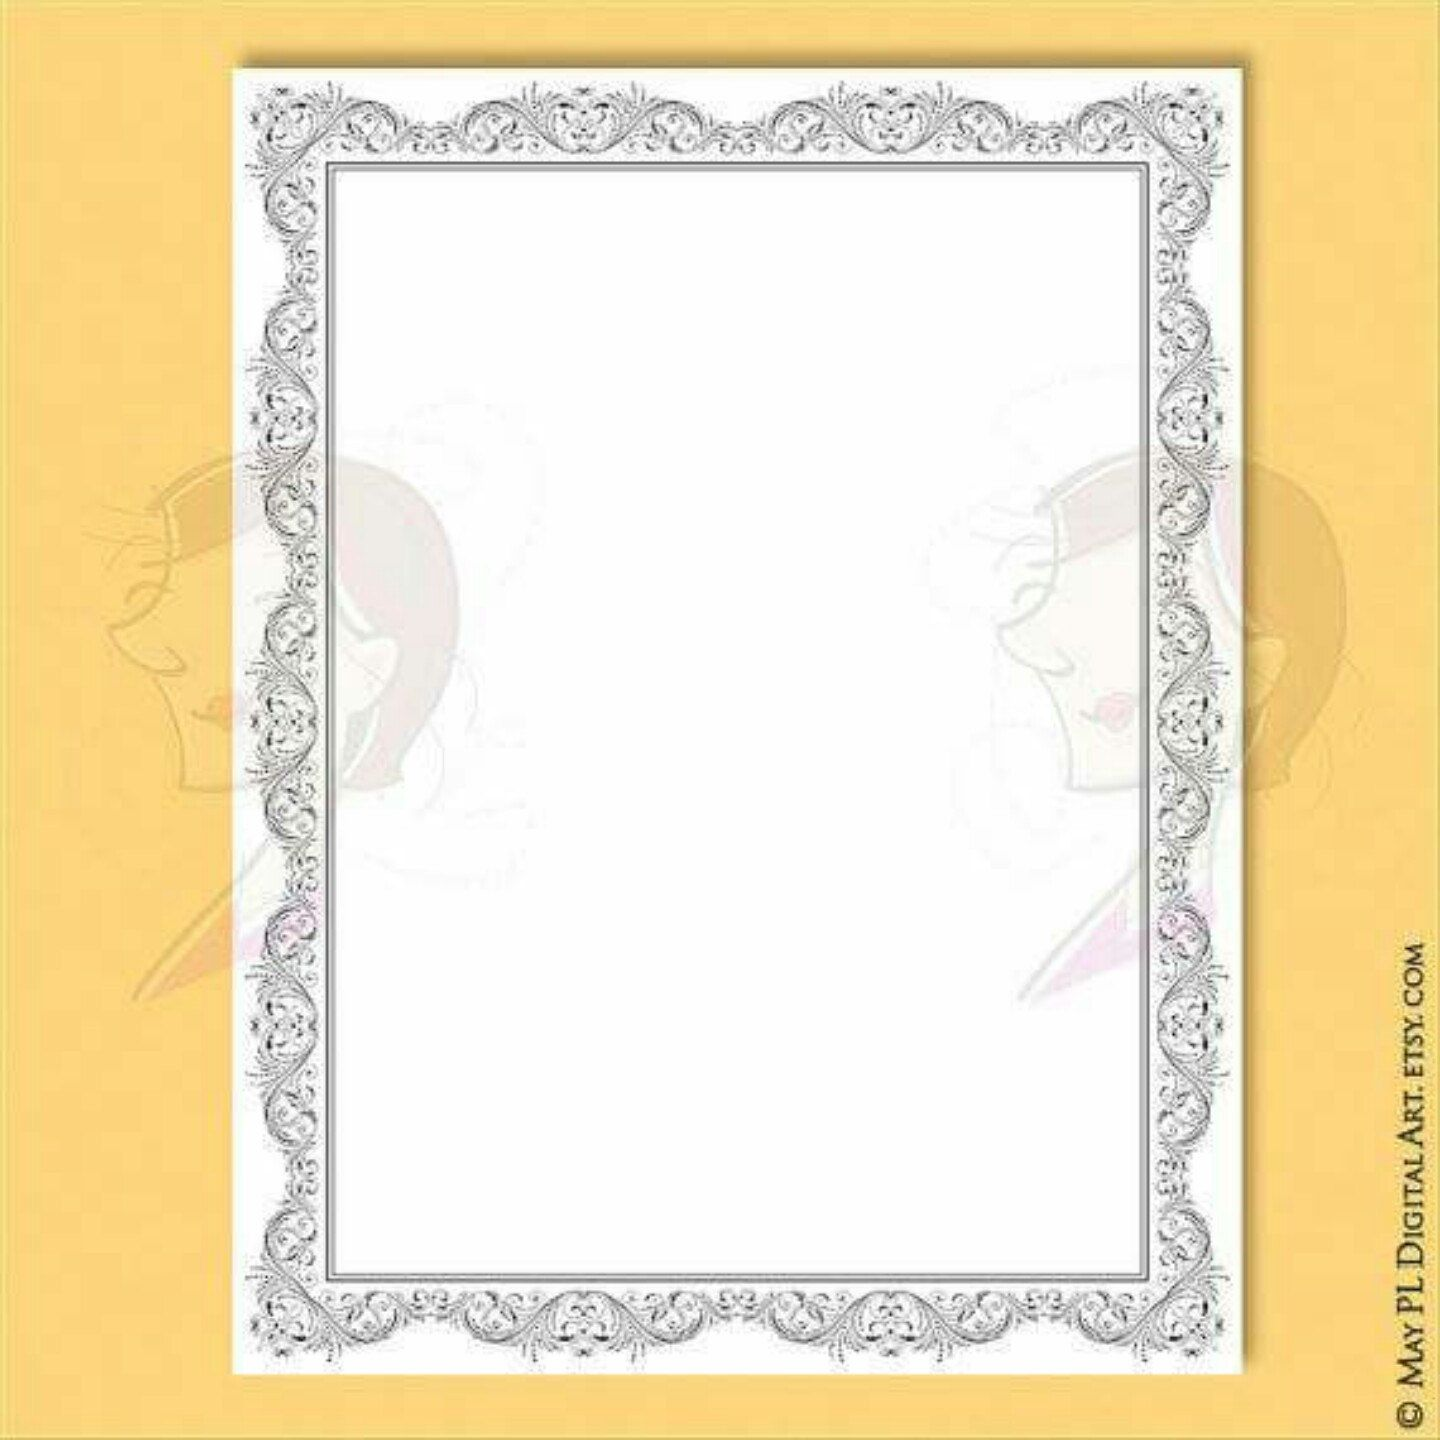 Flourish Frame Clipart 8x11 Certificate Page Borders VECTOR Diploma ...